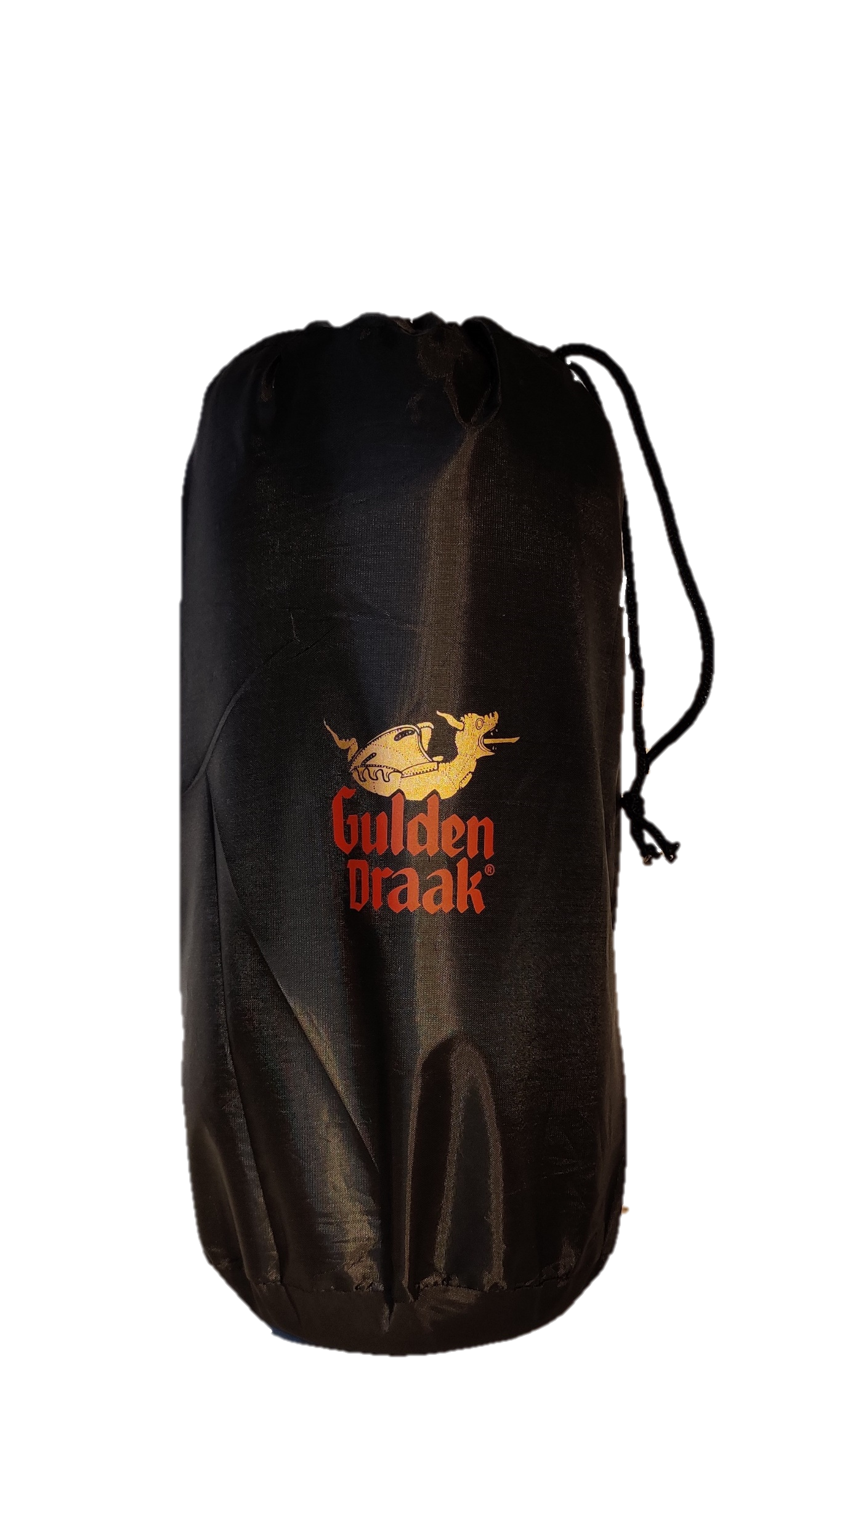 GULDEN DRAAK FLEECE DEKEN